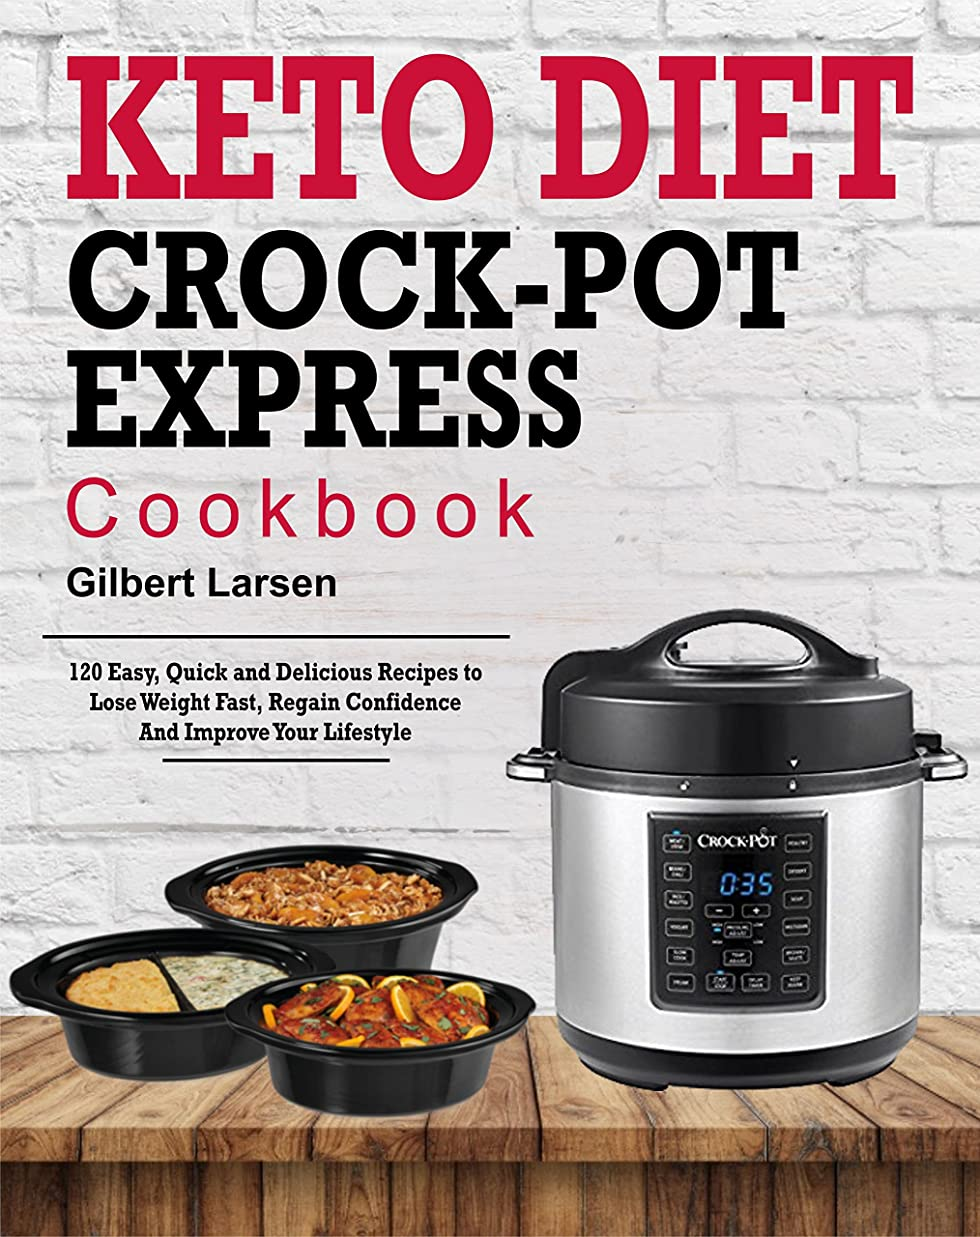 Keto Diet Crock-Pot Express Cookbook for Rapid Weight Loss: 120 Easy, Quick and Delicious Recipes to Lose Weight Fast, Regain Confidence and Improve Your ... and Simple Weght Loss) (English Edition)